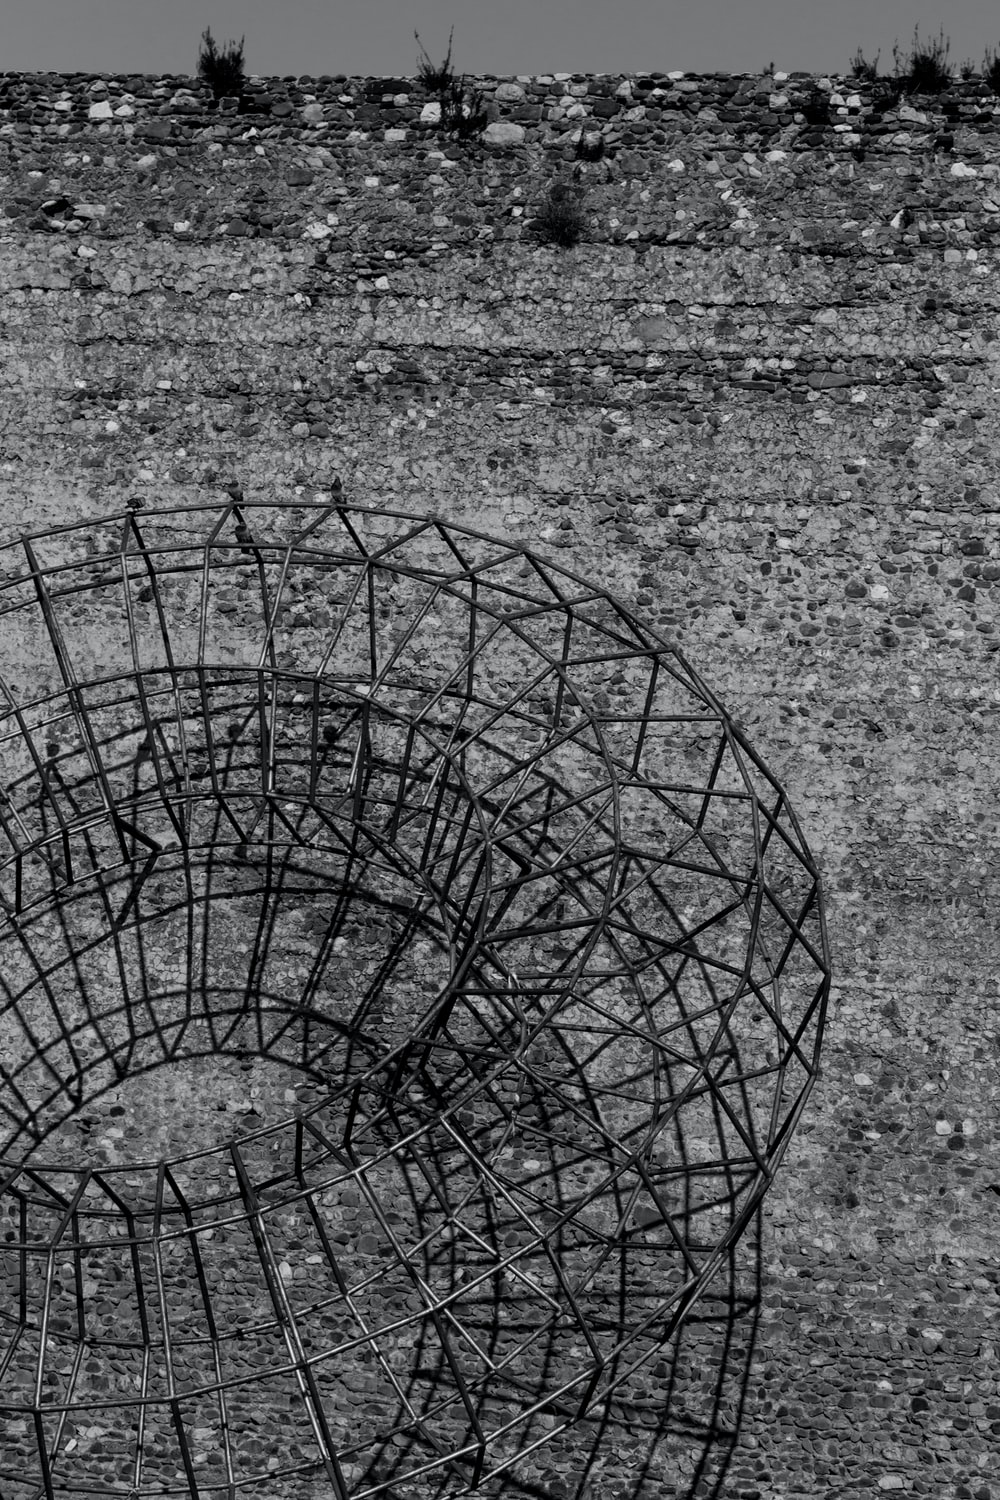 black metal cage on gray surface